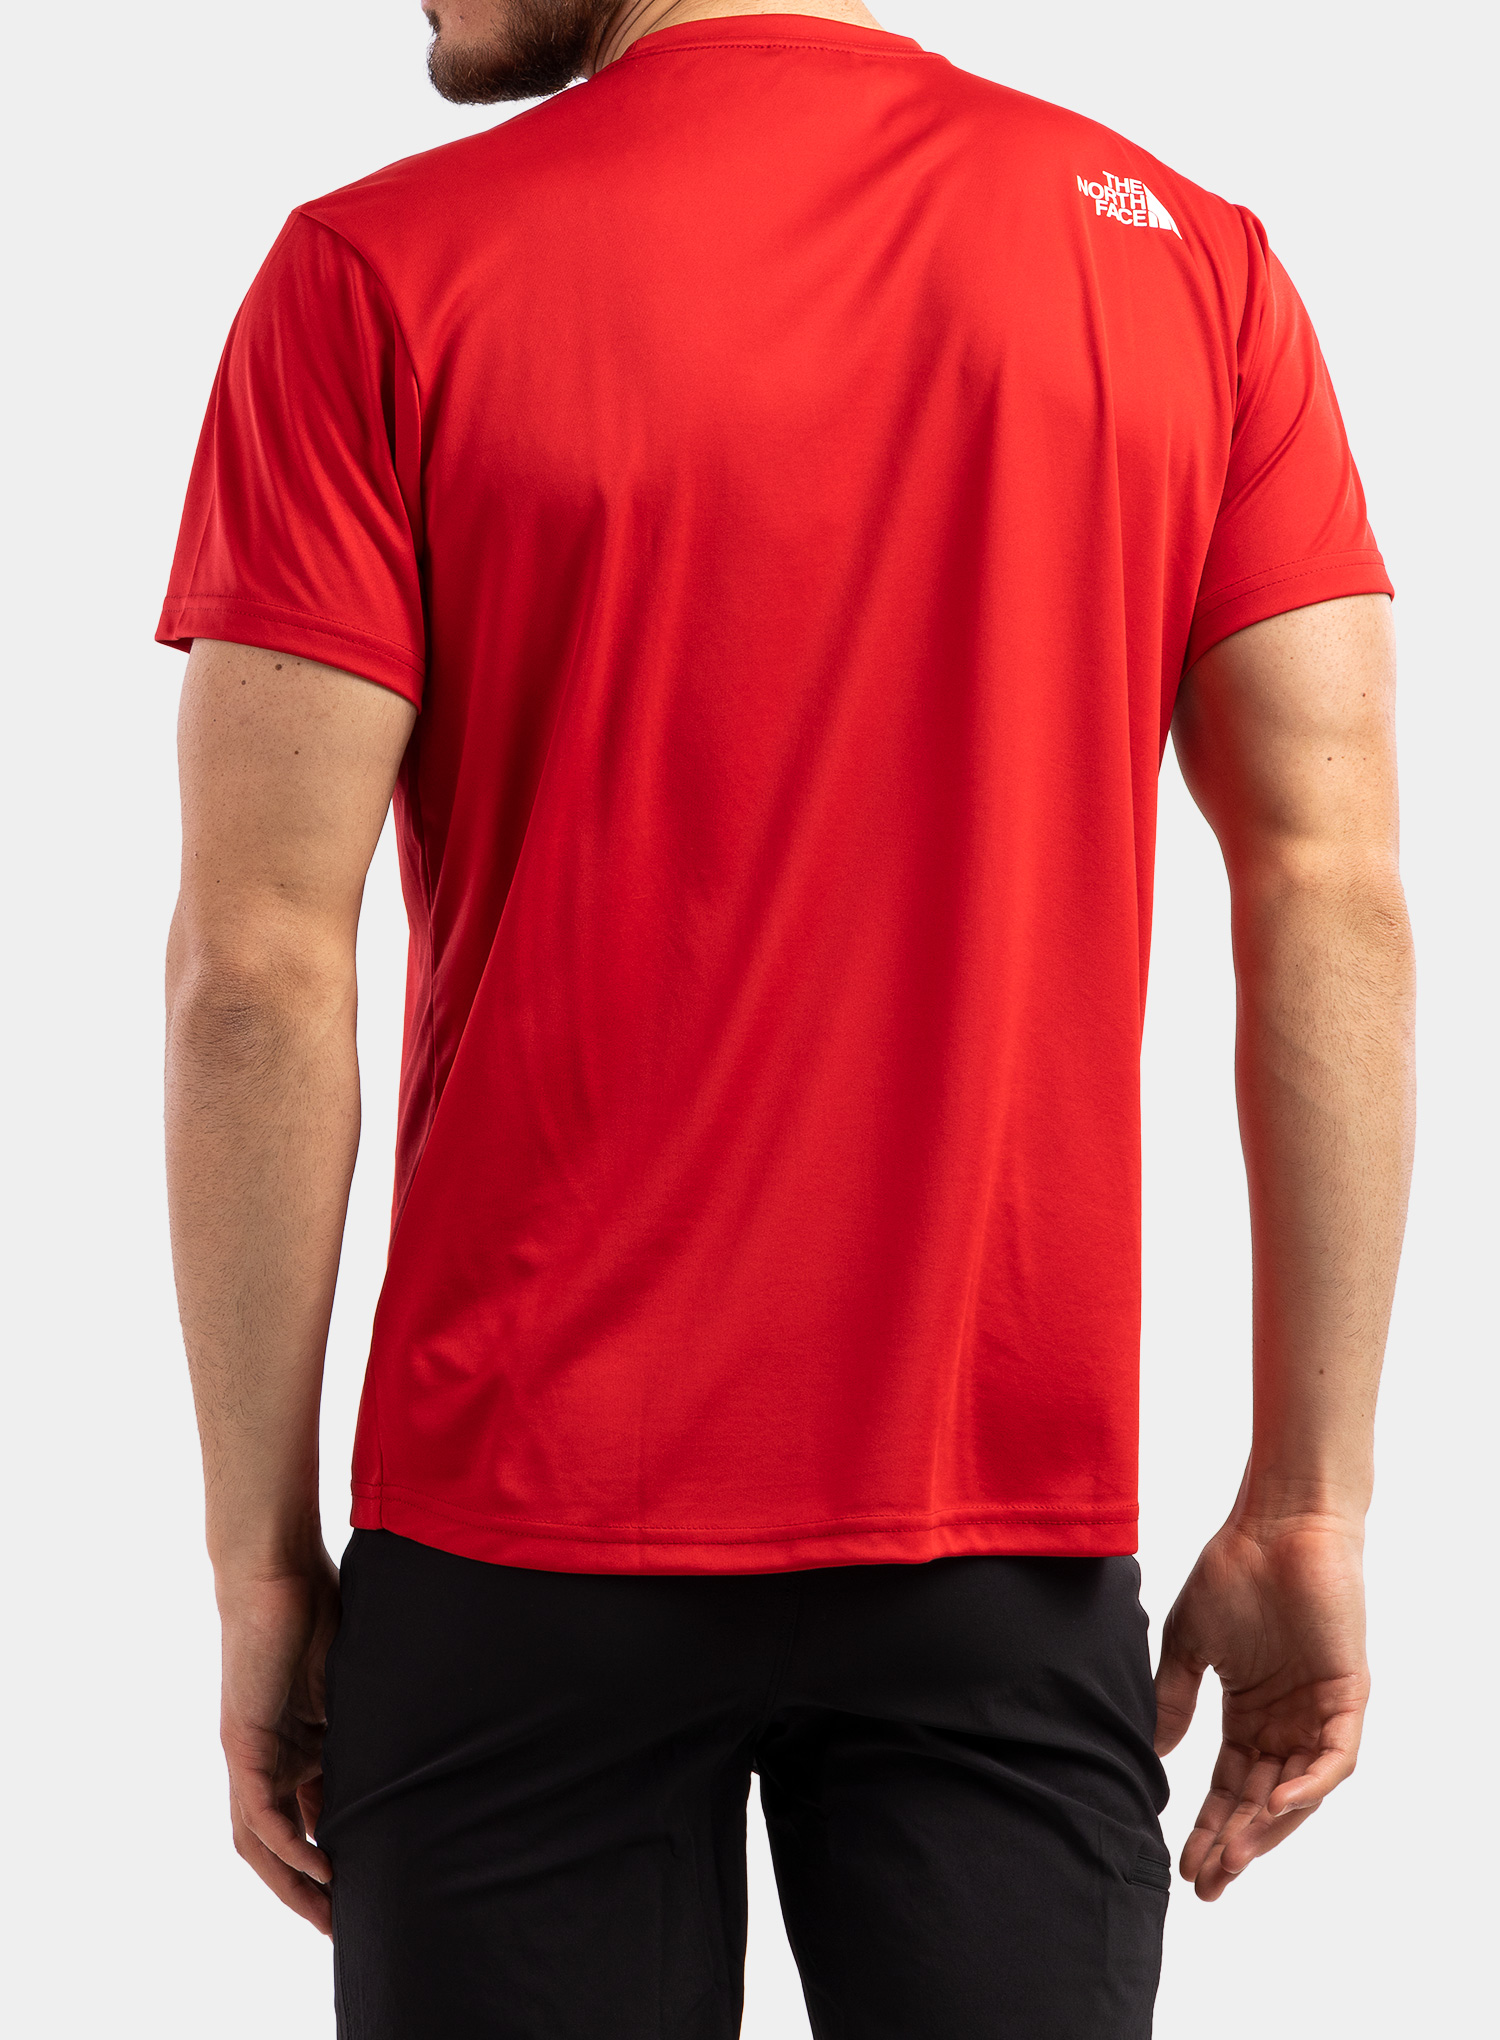 Koszulka The North Face Reaxion Easy Tee - tnf red - zdjęcie nr. 2